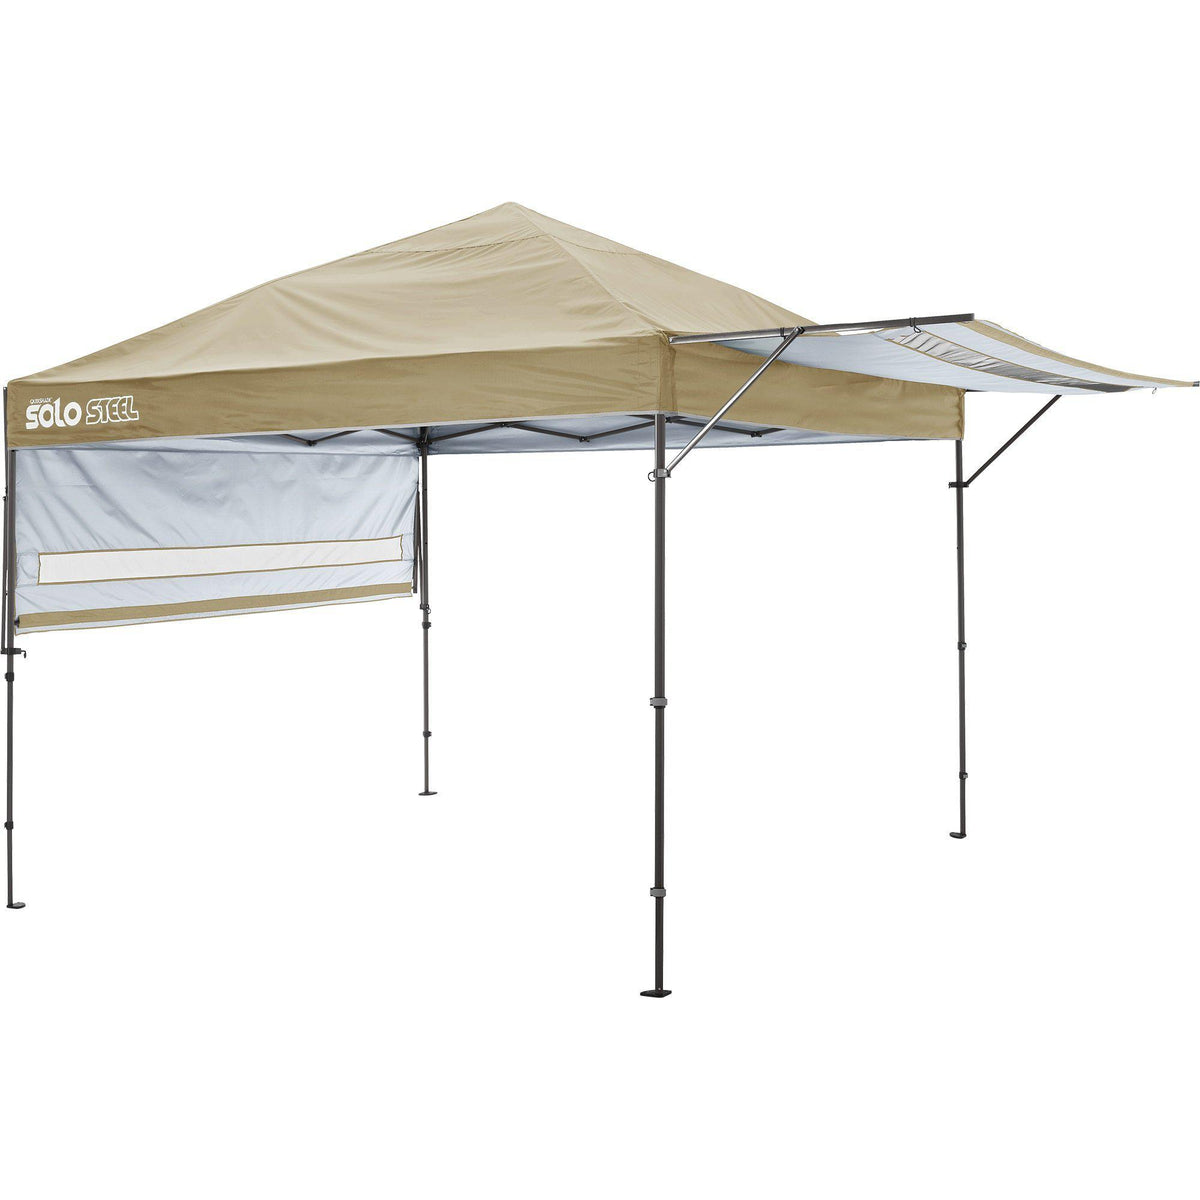 Quik Shade Solo Steel 10 x 17 ft. Straight Leg Canopy, Khaki